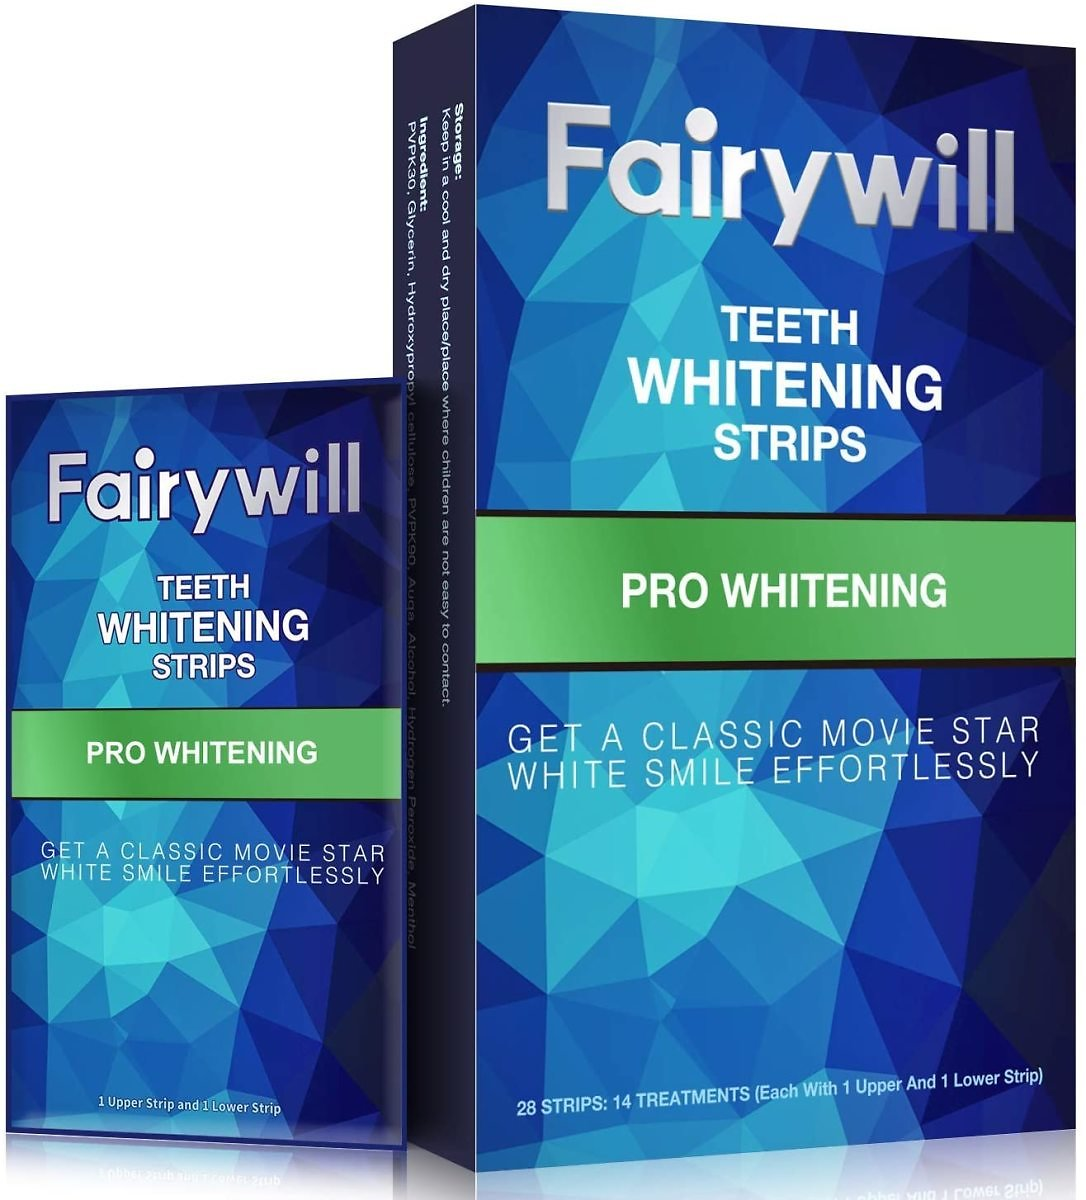 Fairywill Pro Whitening Teeth Whitening Strips 28-Pack